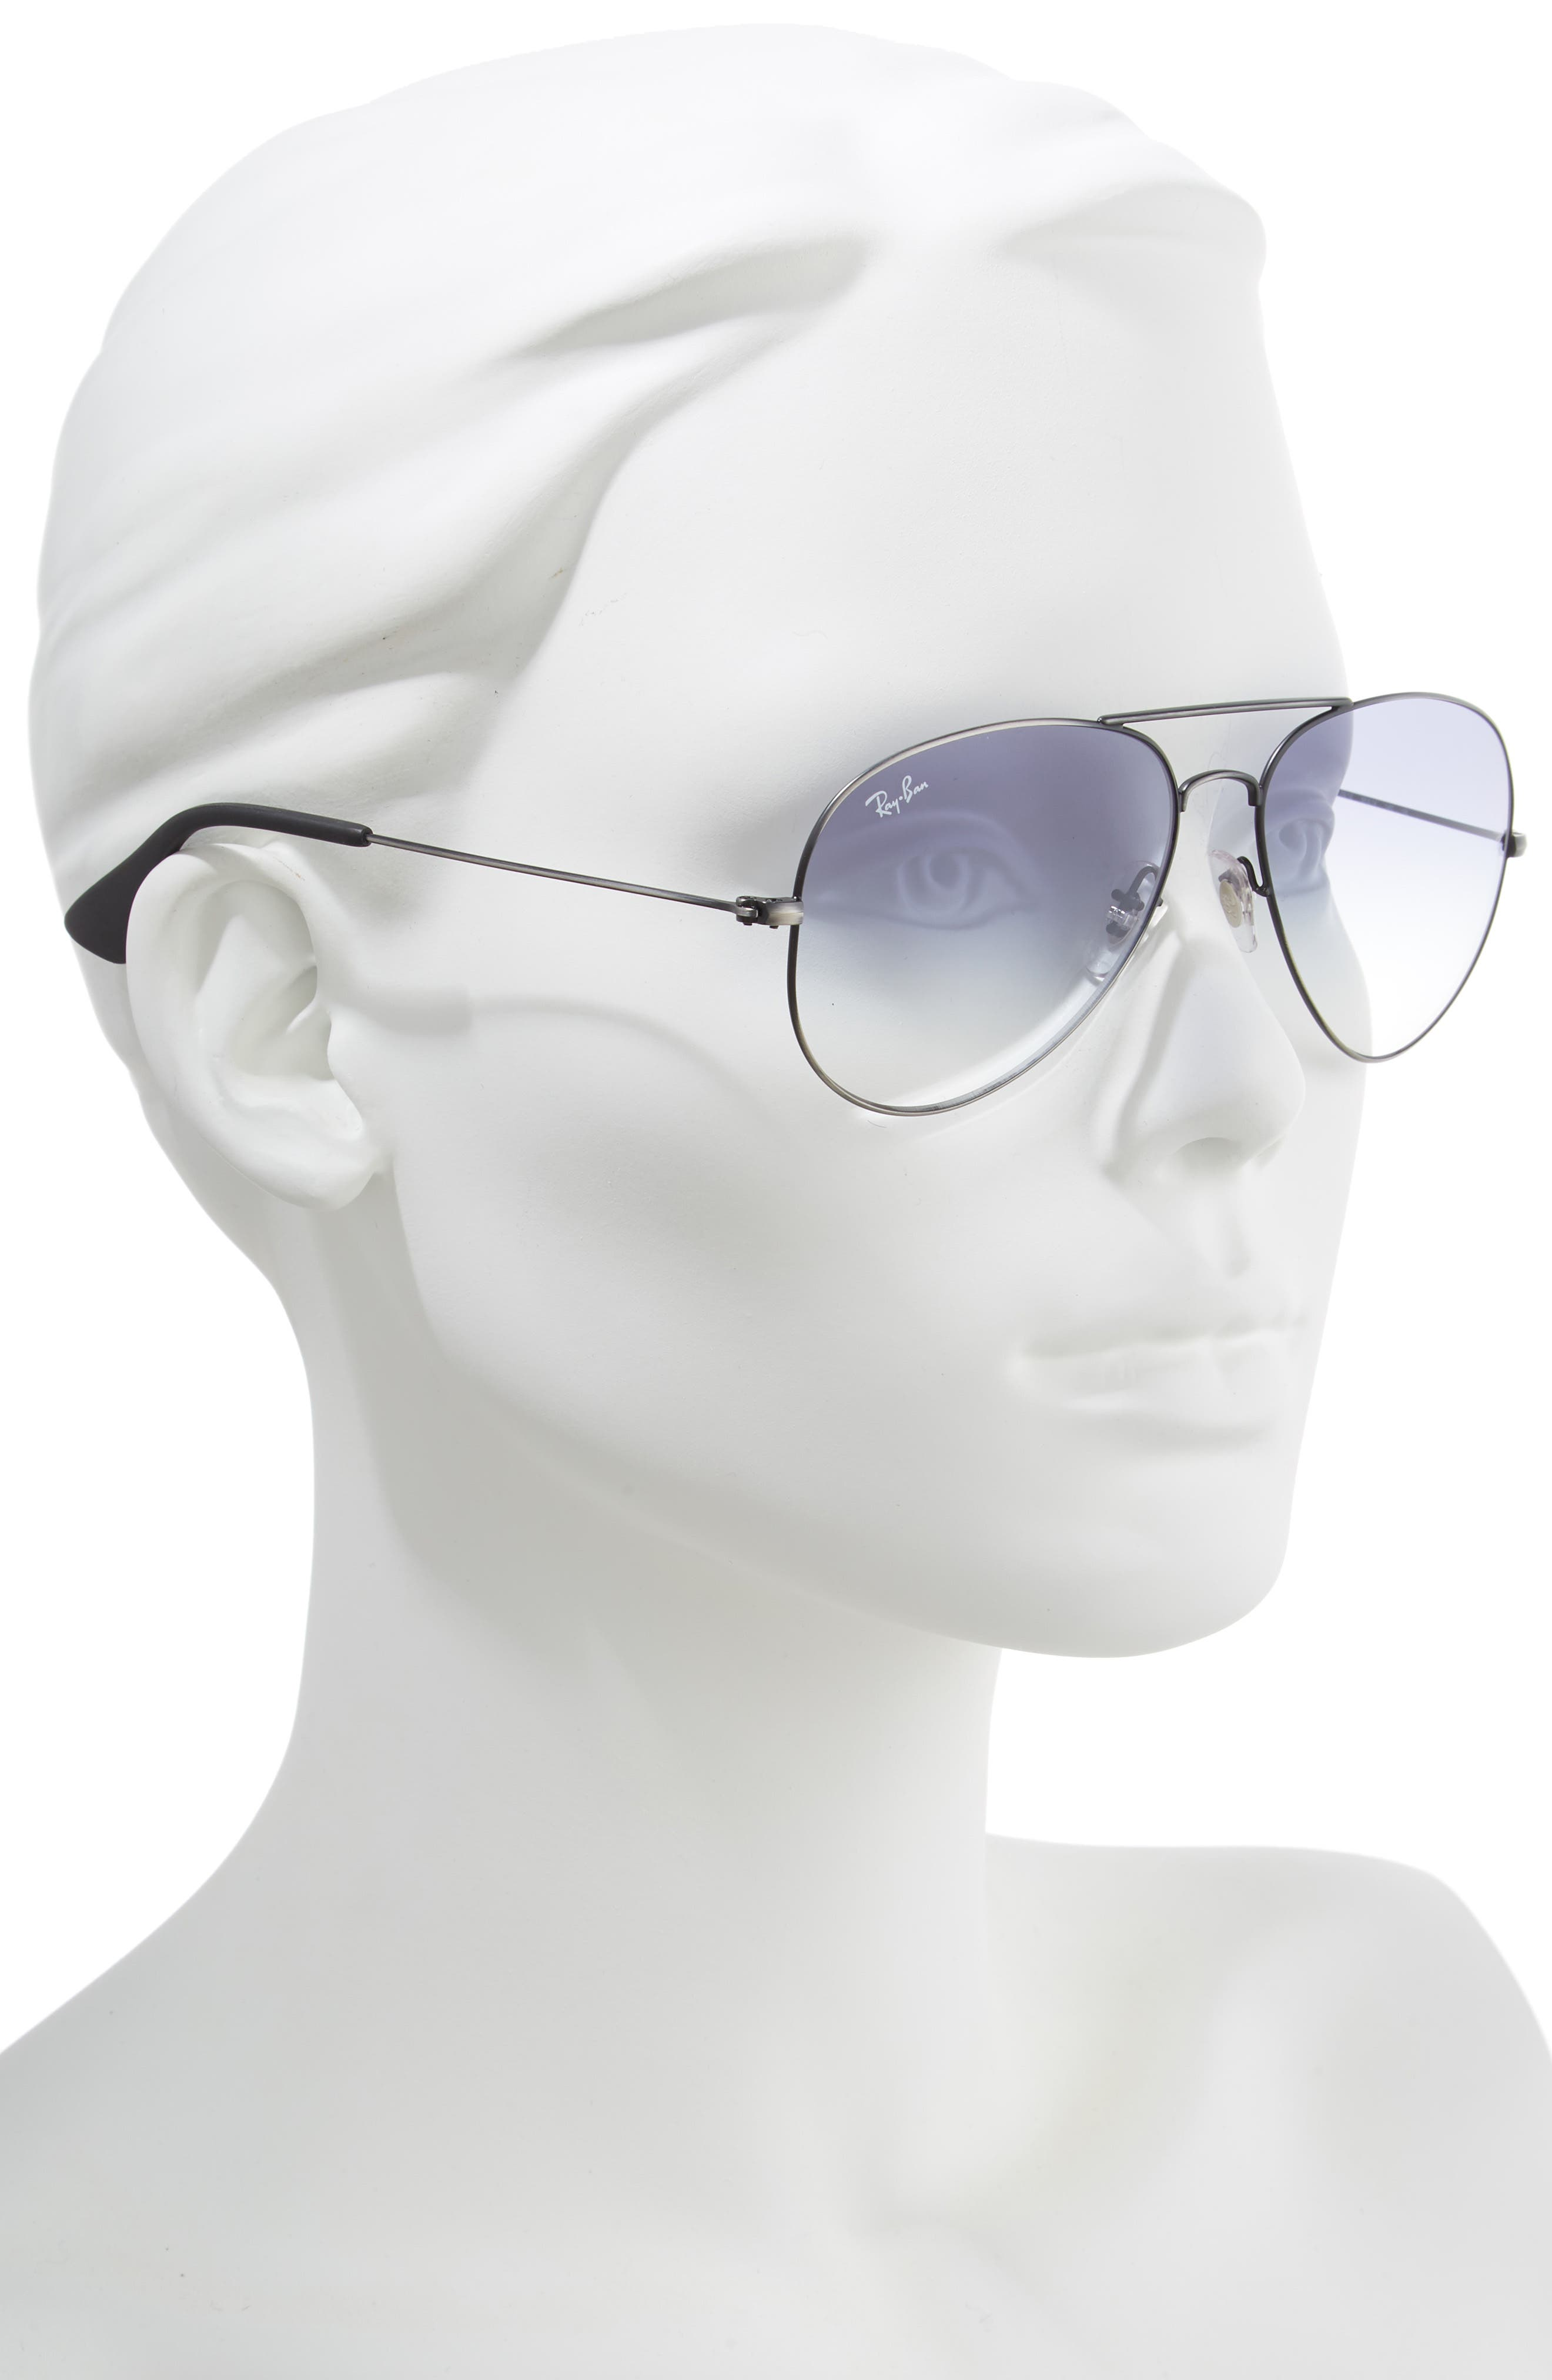 RAY-BAN,                             58mm Gradient Aviator Sunglasses,                             Alternate thumbnail 2, color,                             SILVER/ LIGHT BLUE GRADIENT